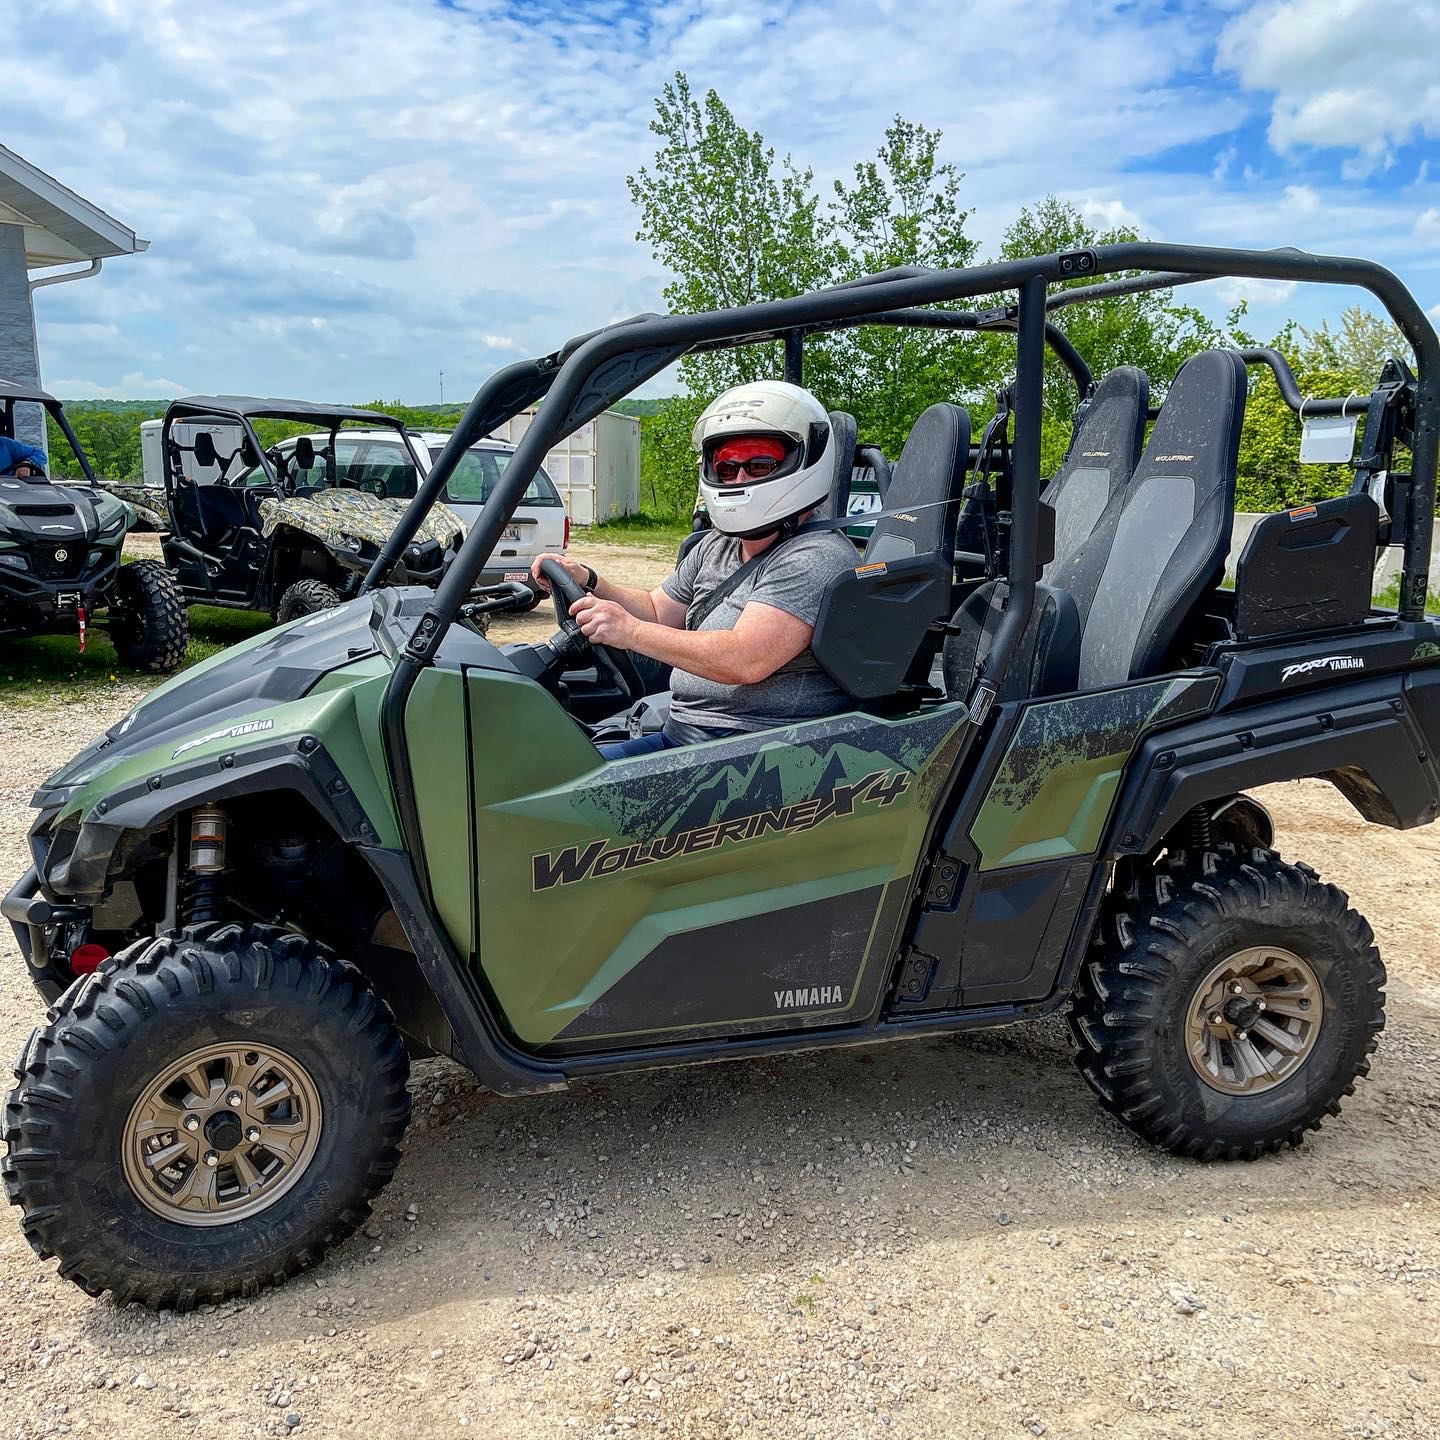 You can go offroading at Road America in Elkhart Lake, WI.